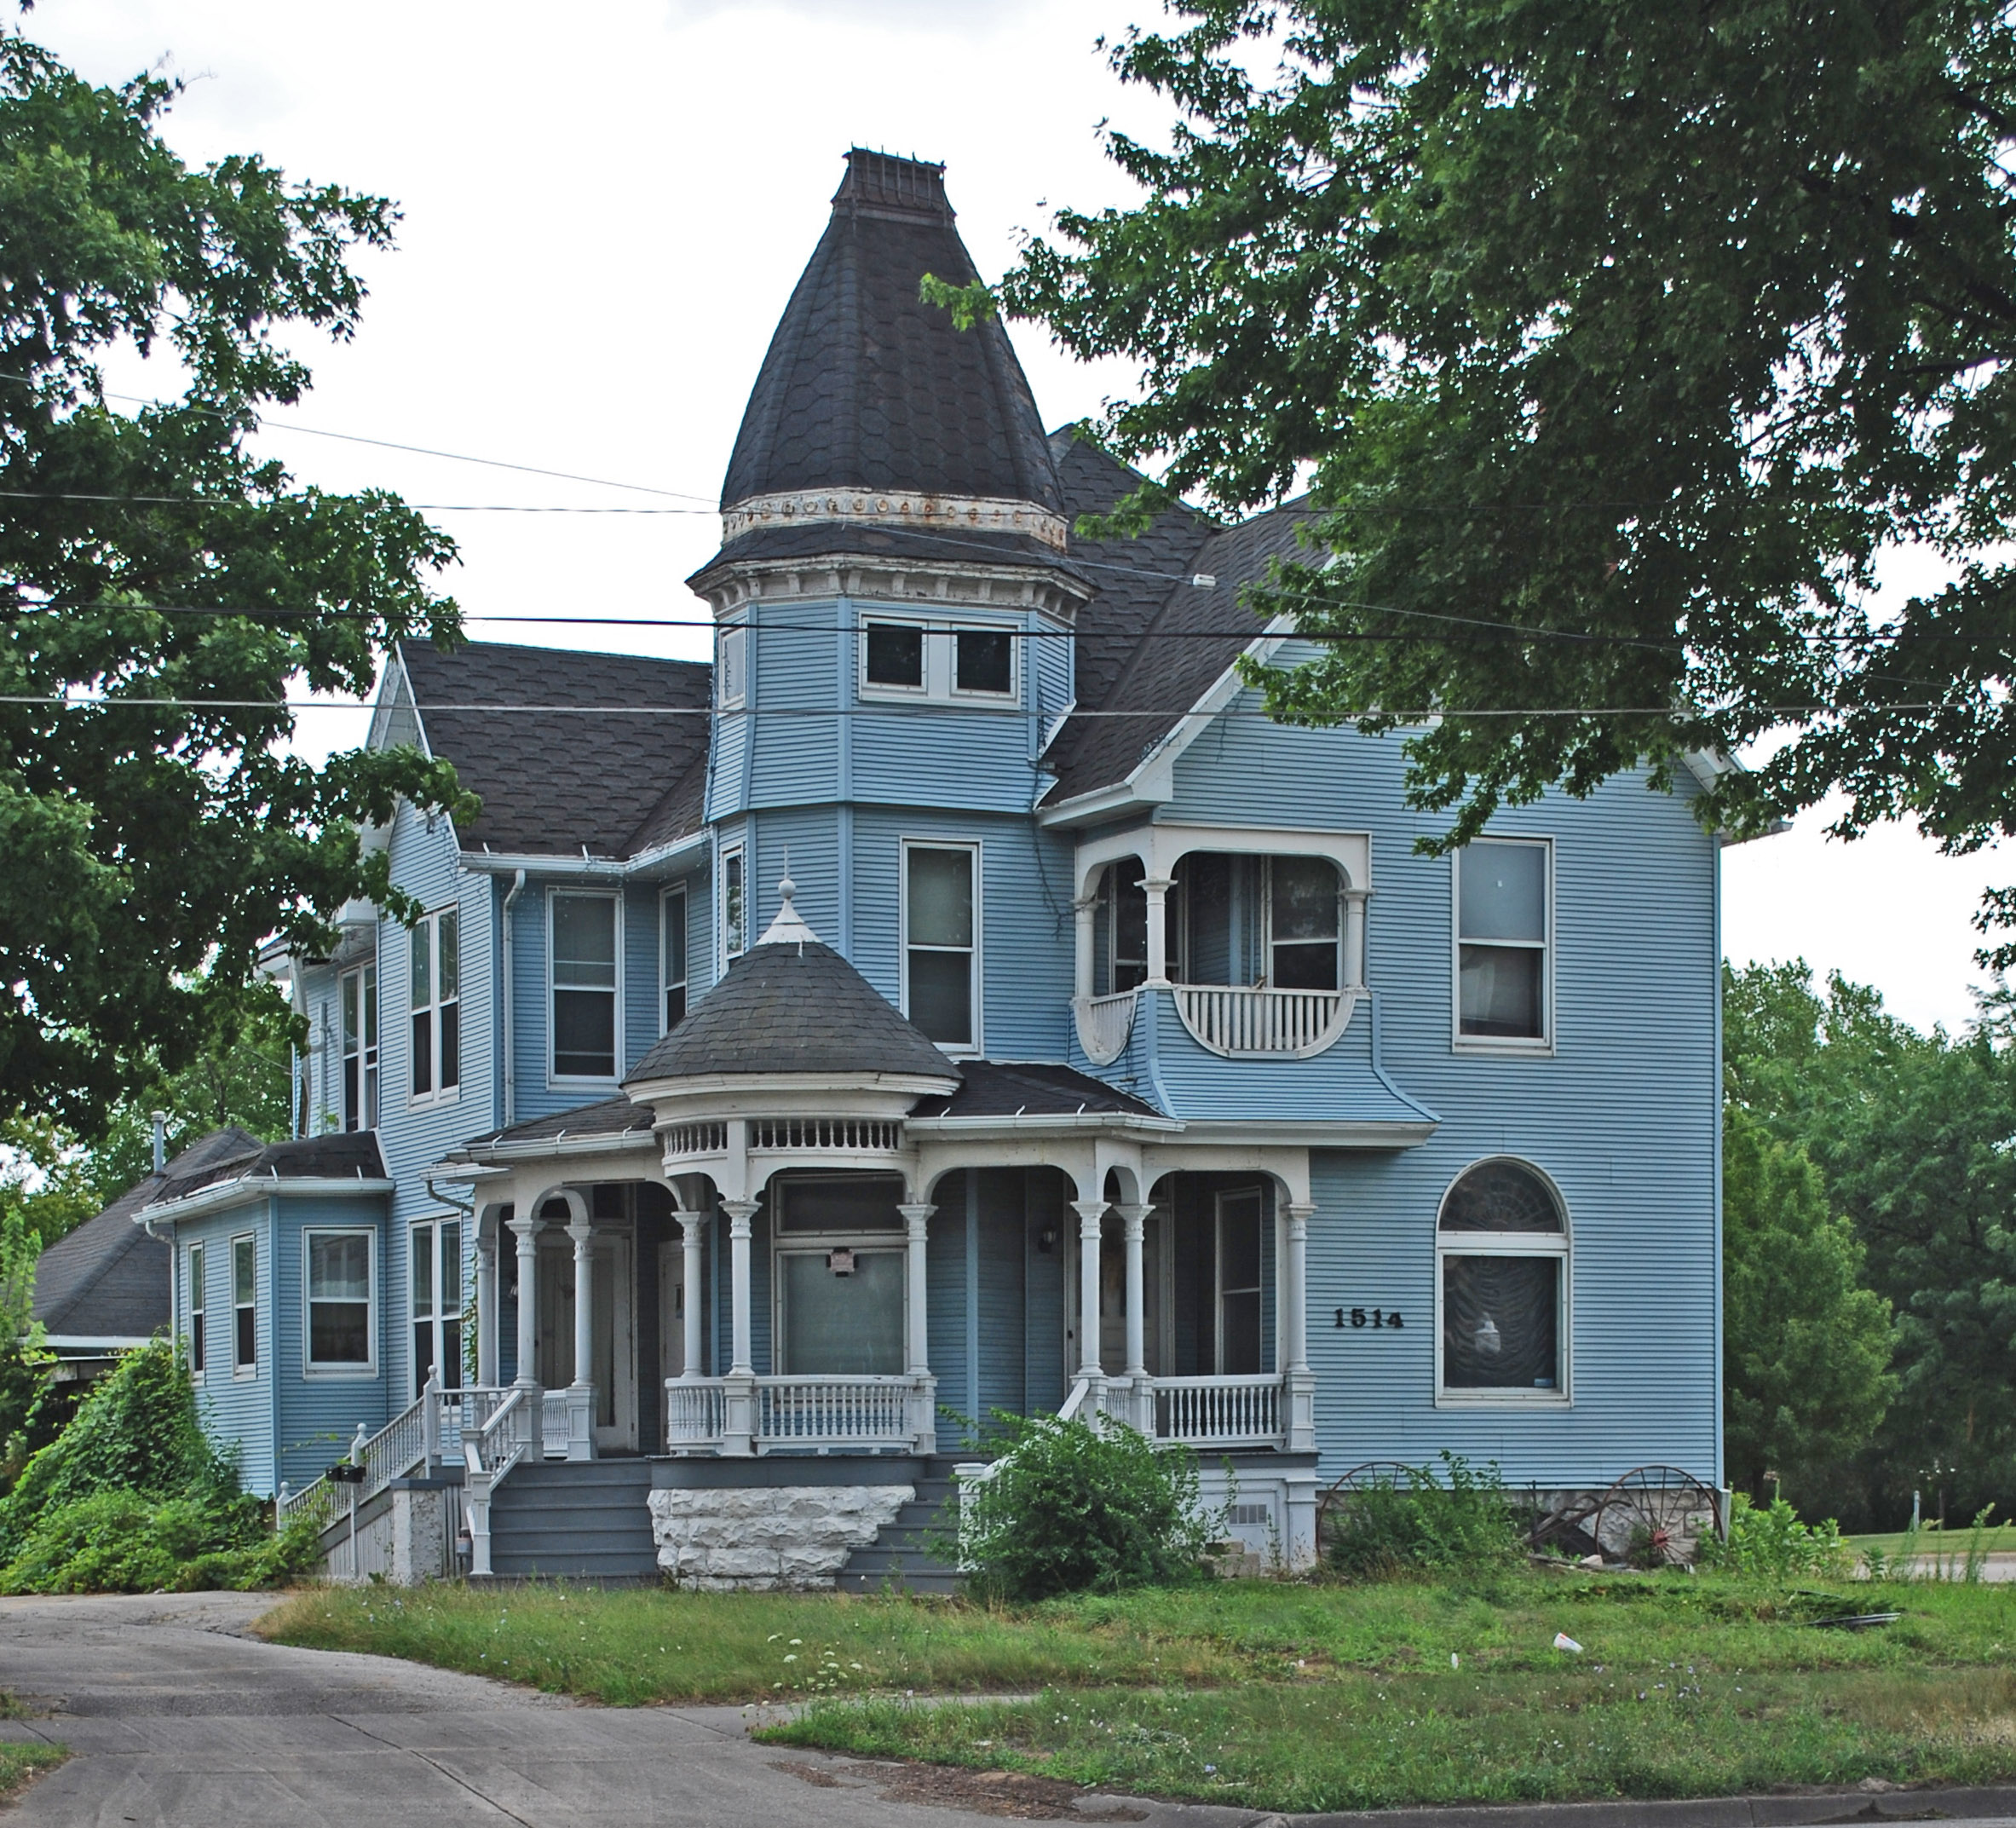 michigan blue house blue houses pinterest house and queen anne queen anne style victorian home listed on the national register of historic places located at 1514 n